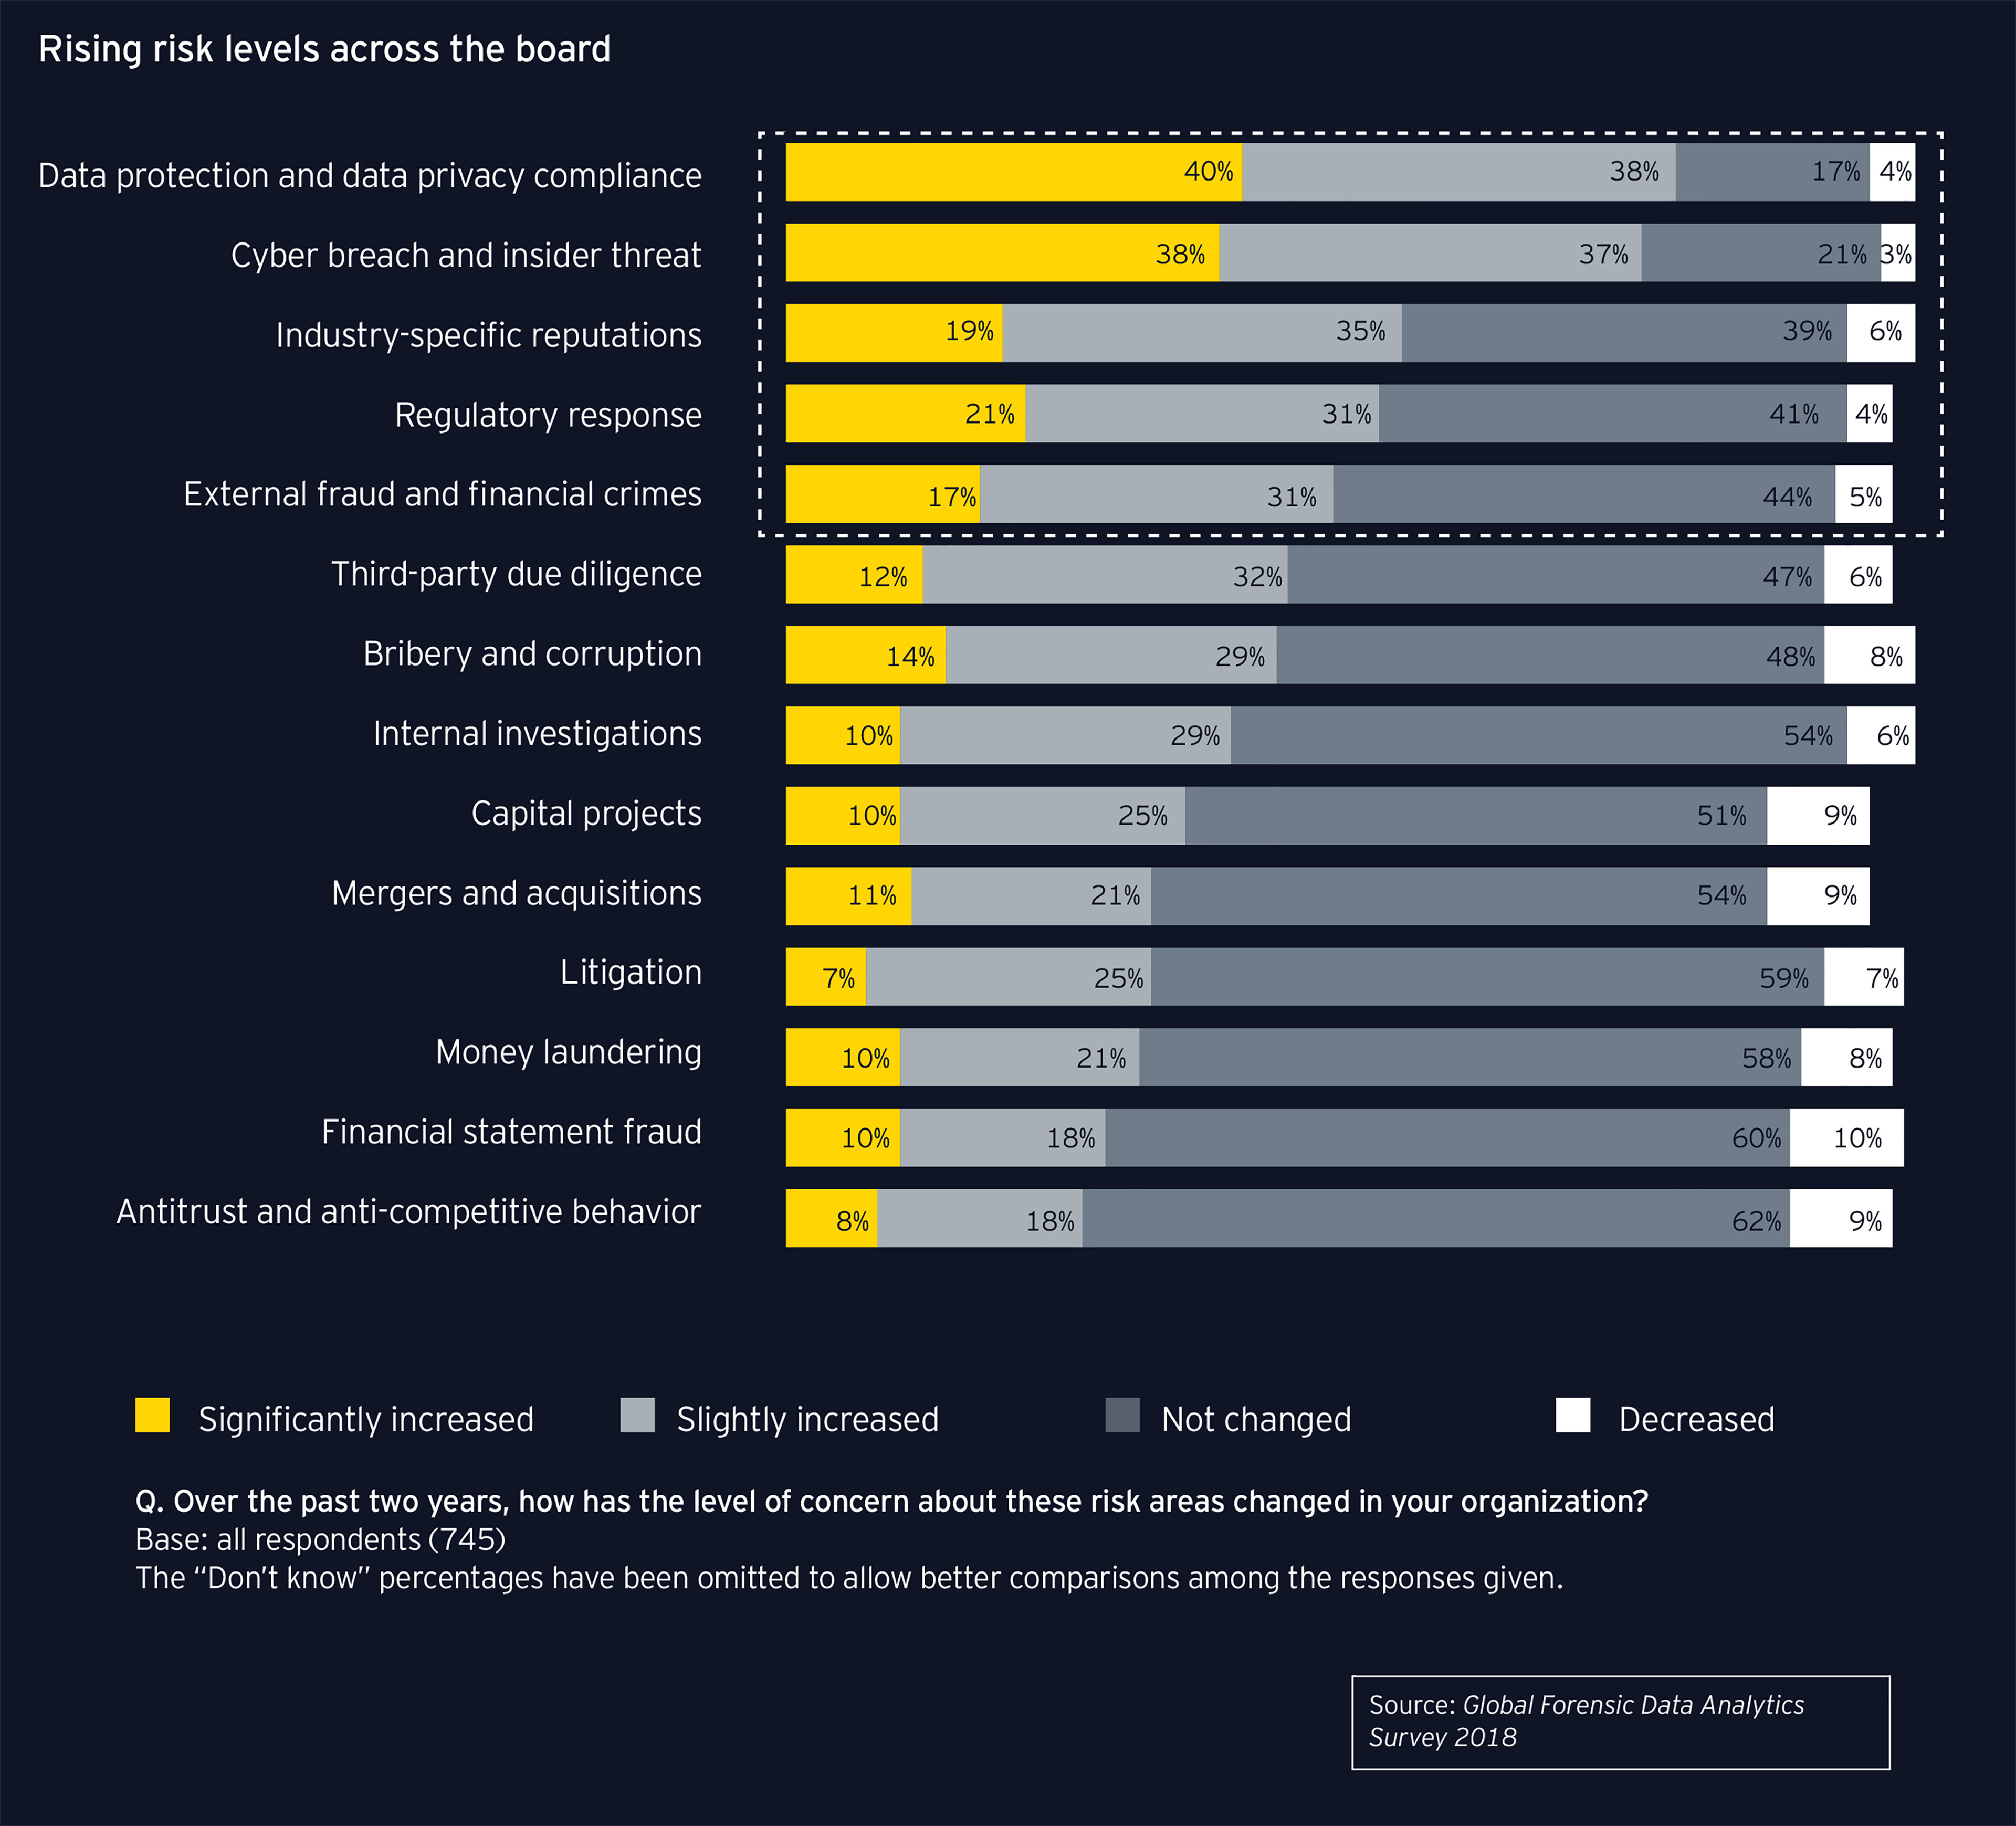 ey-rising-risk-levels-across-the-board